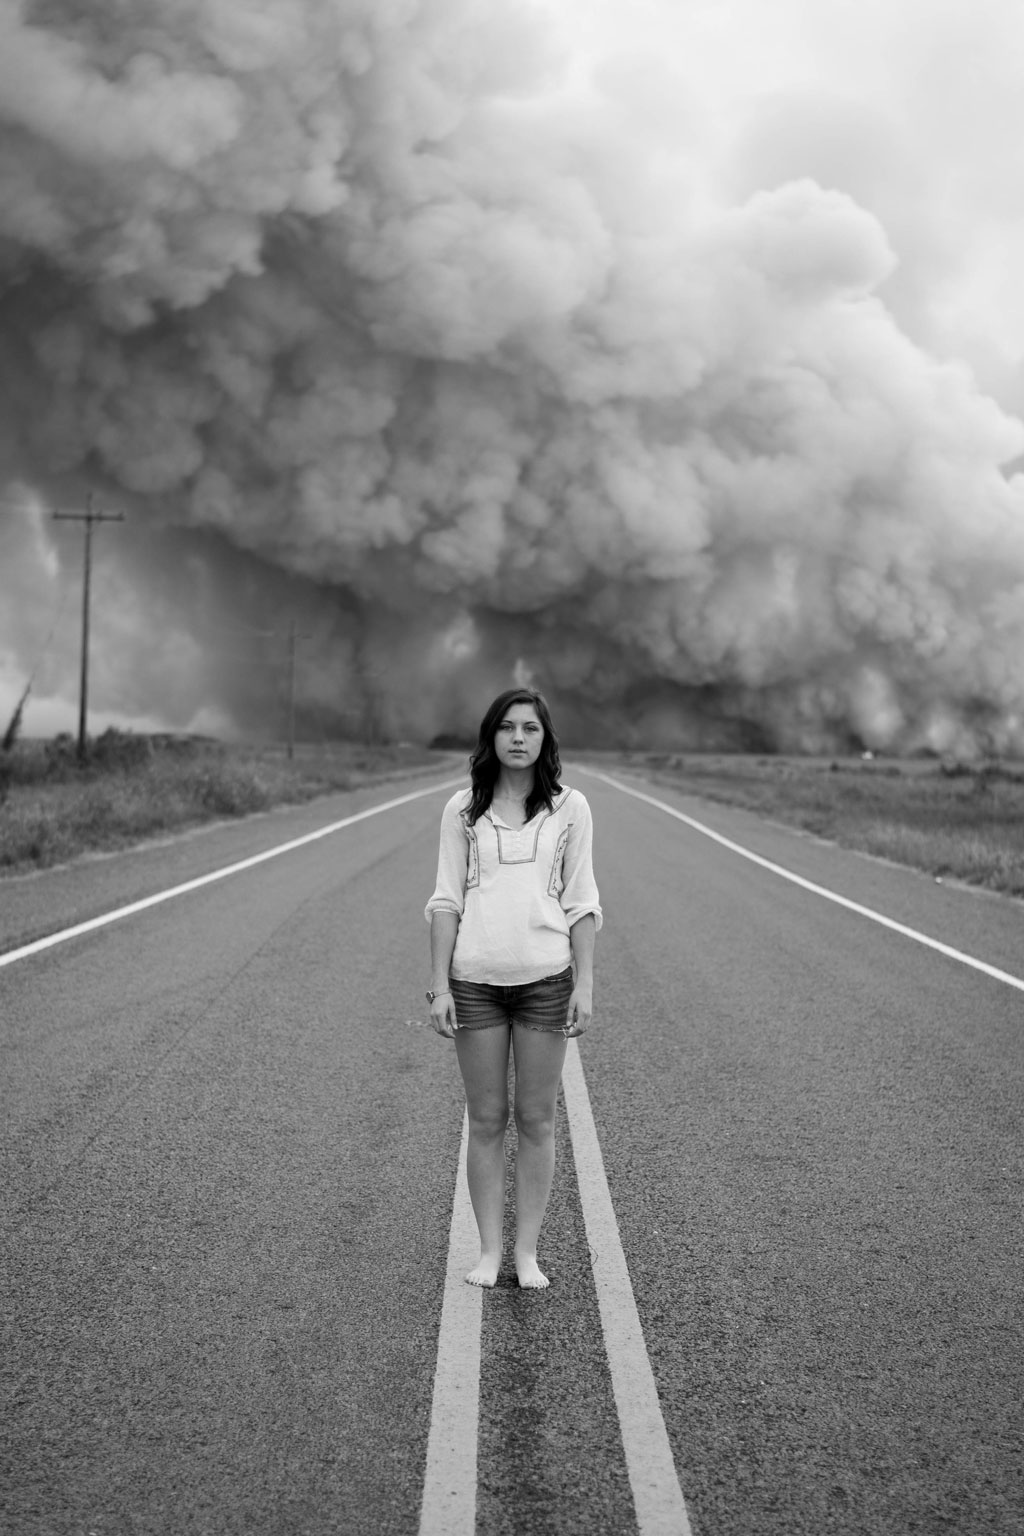 black and white photo of woman standing on road's divider with dust clouds in background